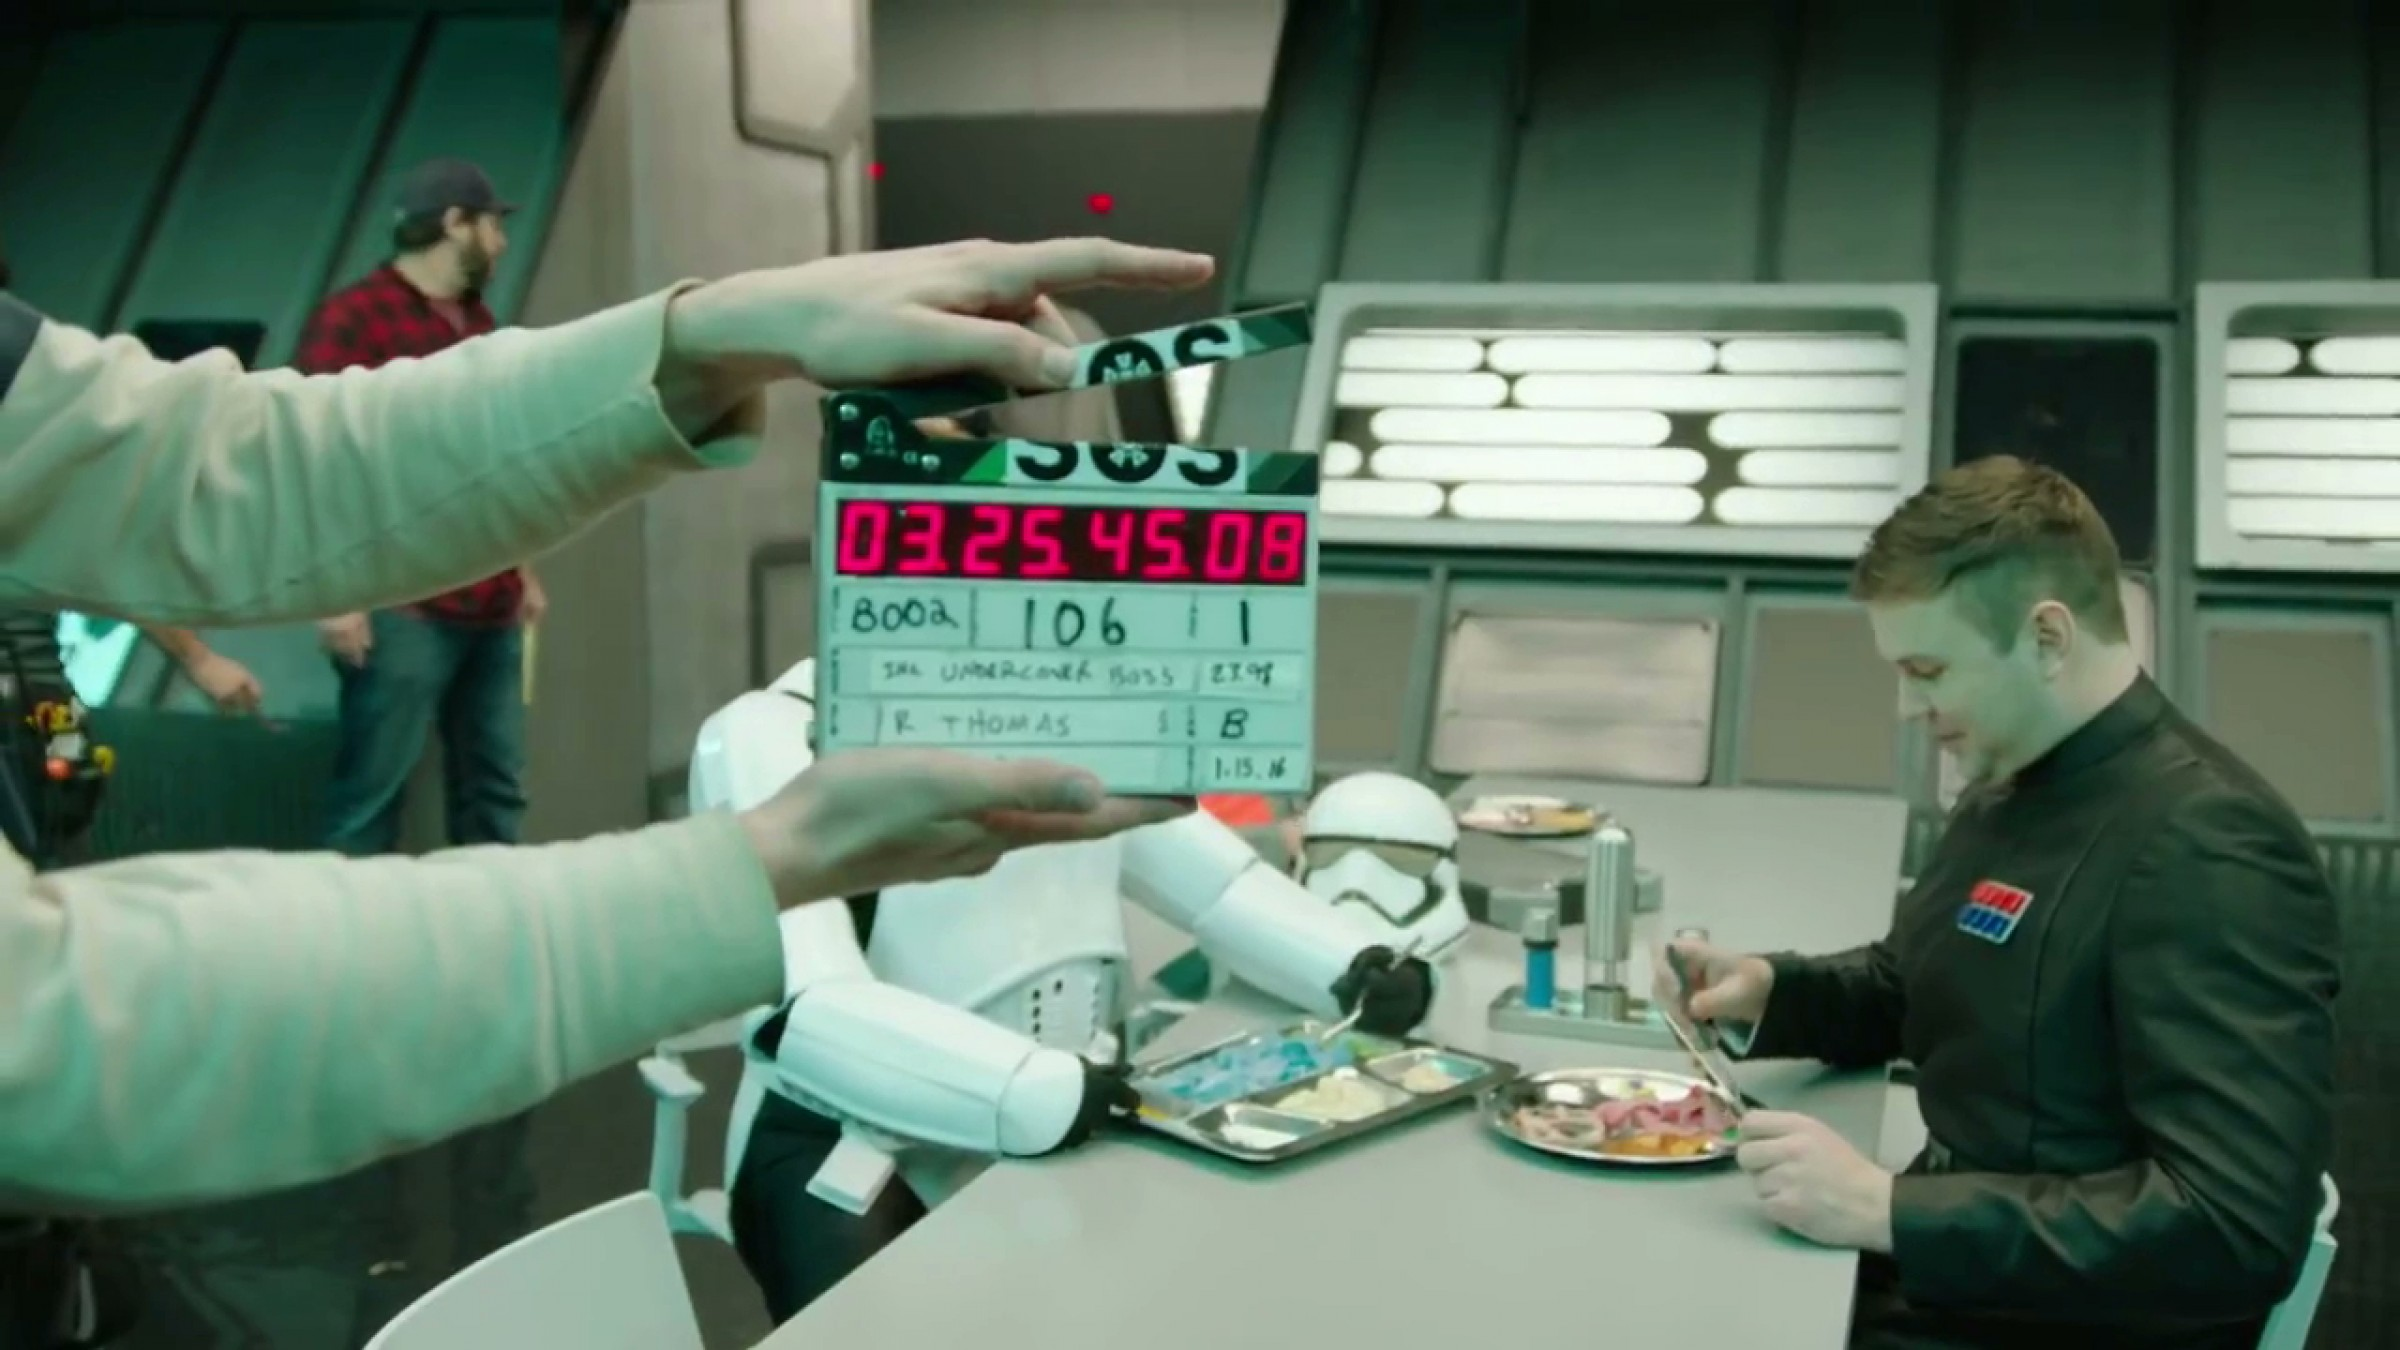 Candid Camera Star Wars : Behind the scenes of snls hilarious star wars undercover boss